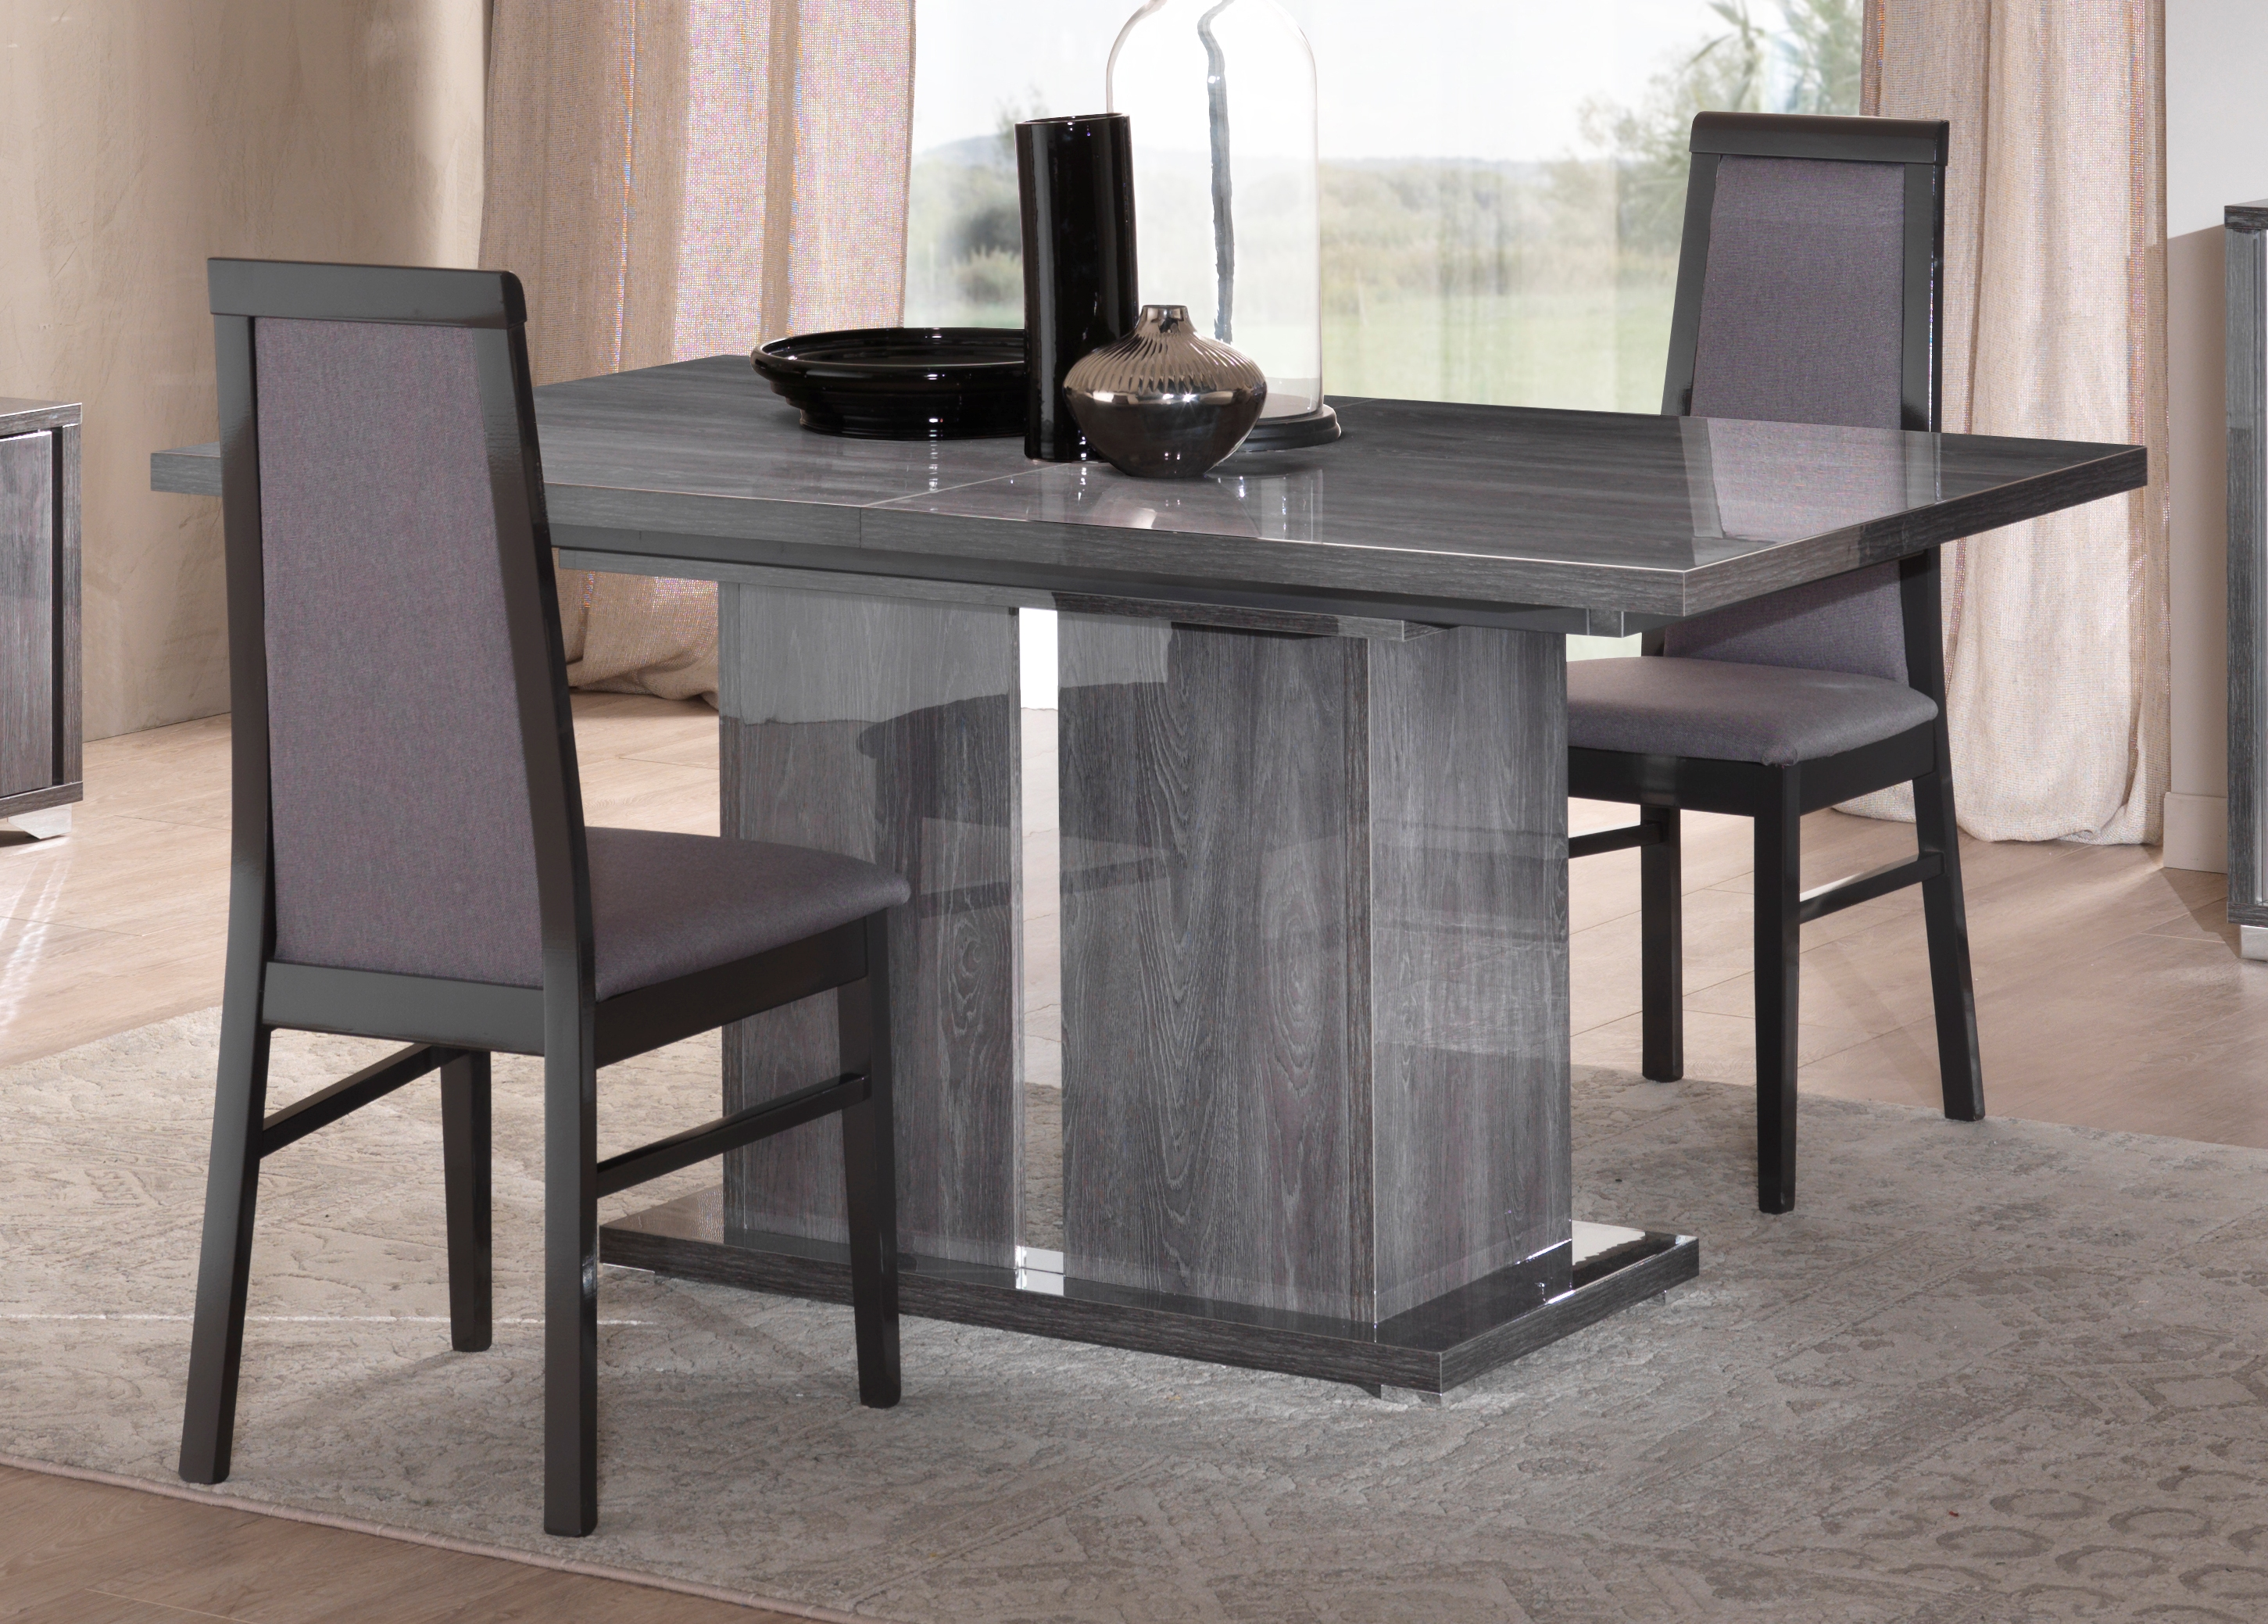 Armony dining table 2